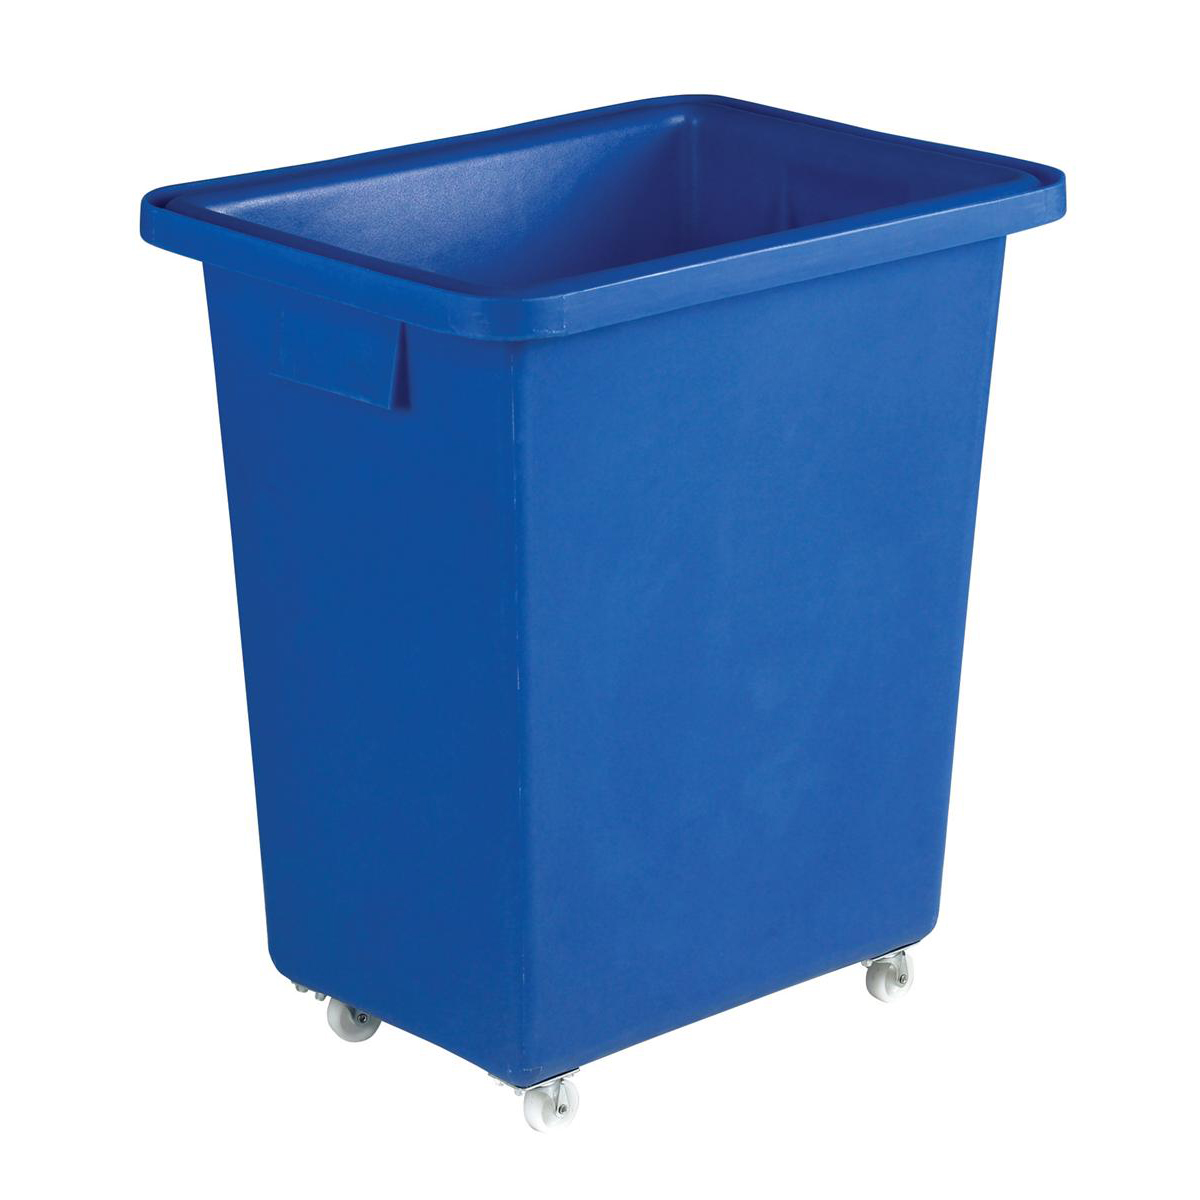 Recycling Bins Bottle Skip Four Castors Medium Density Polyethylene 580x410x700mm Royal Blue